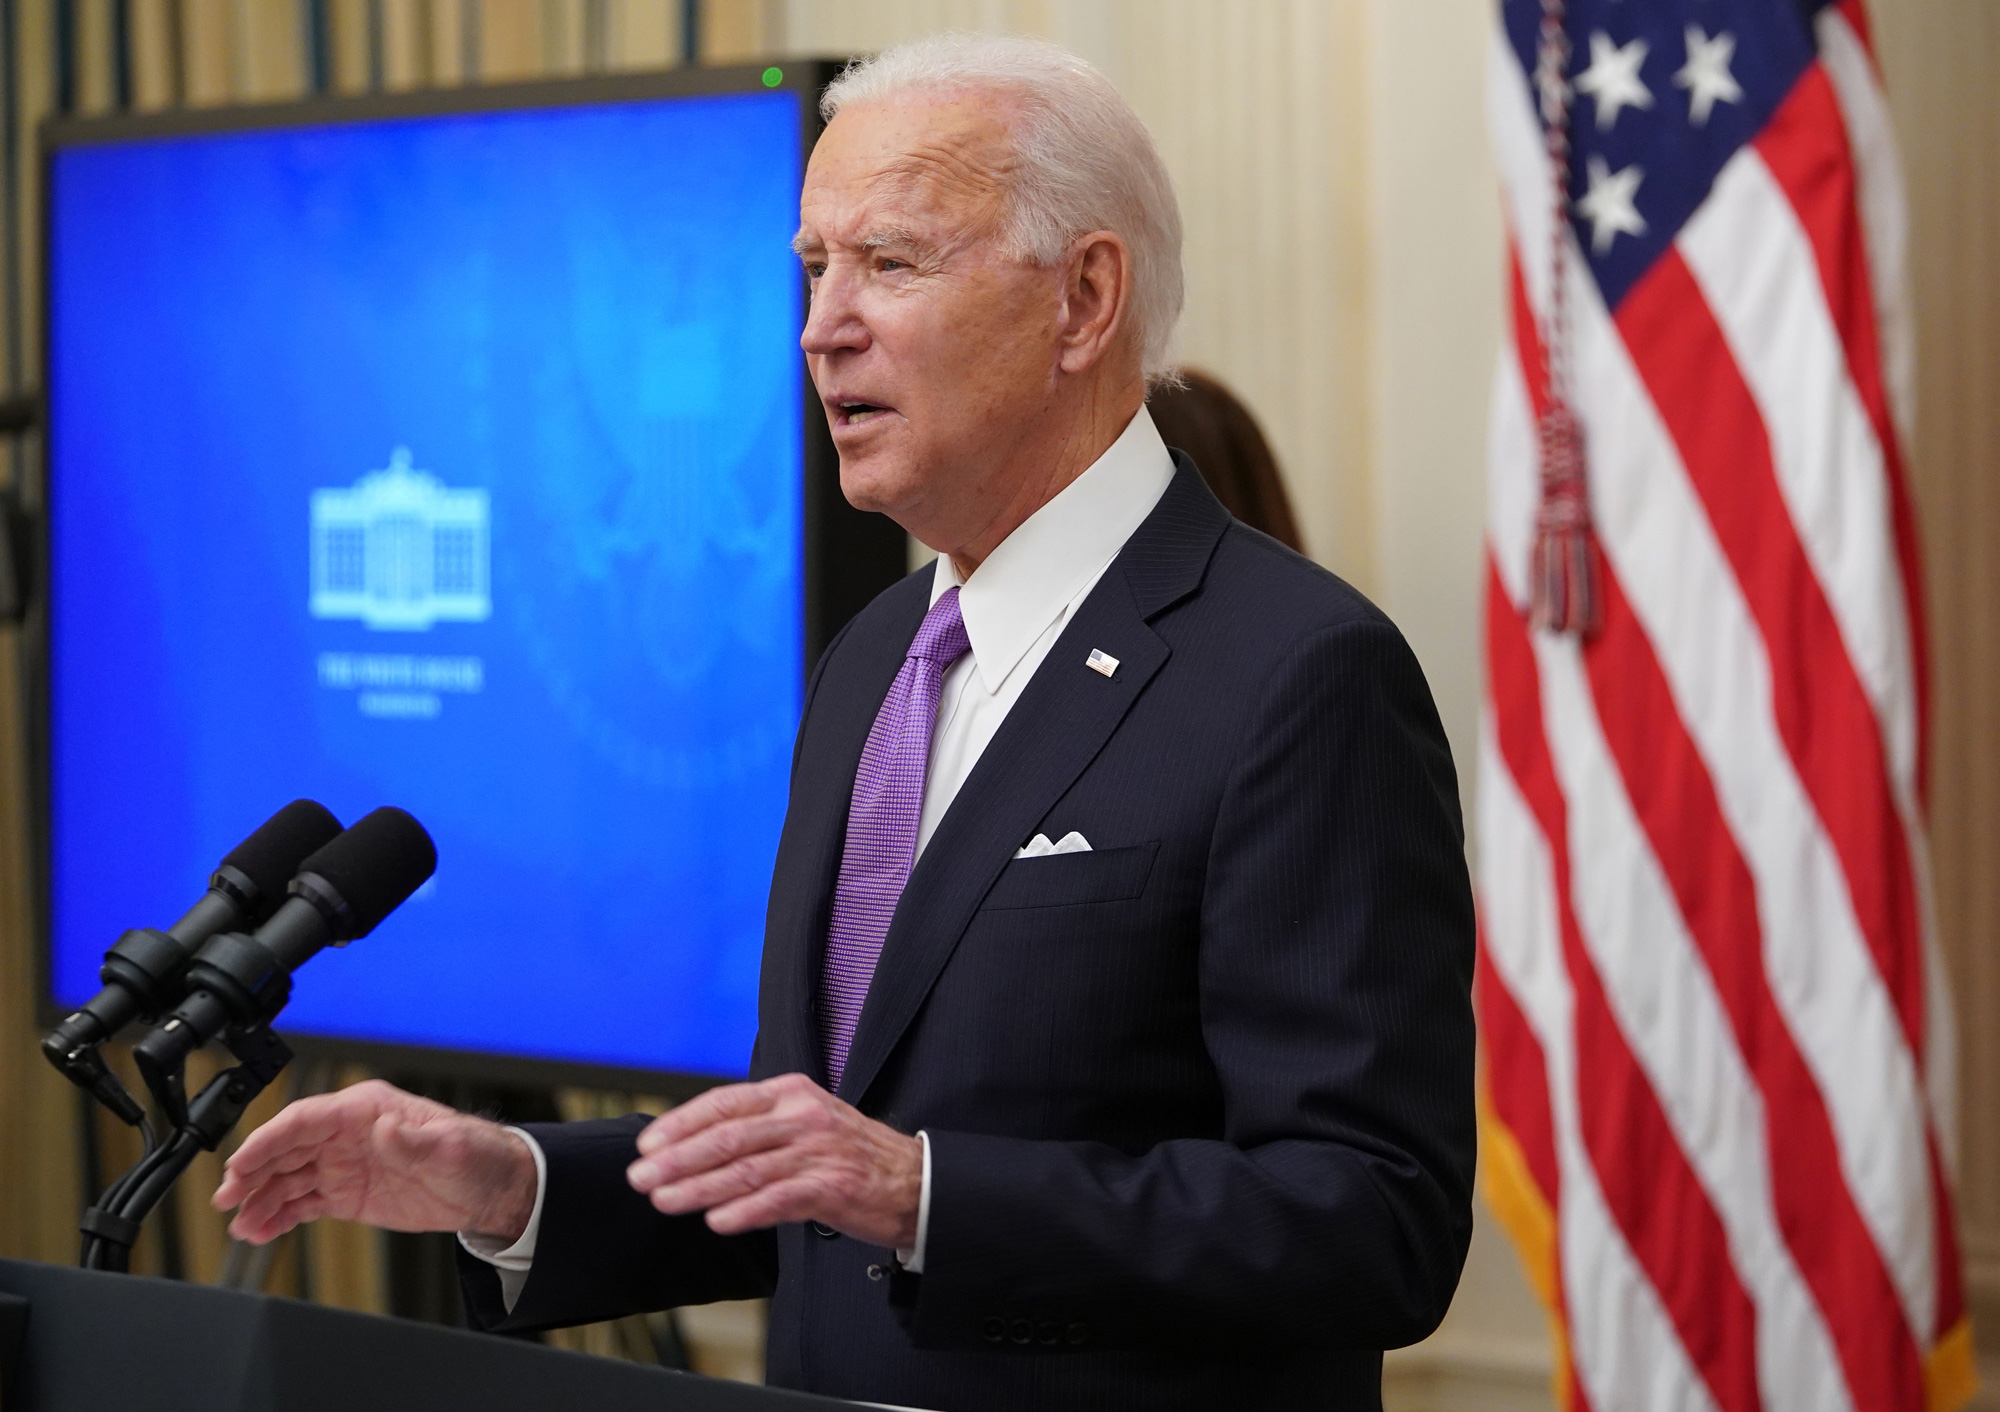 President Joe Biden speaks about the Covid-19 response in the State Dining Room of the White House in Washington, DC, on January 21.